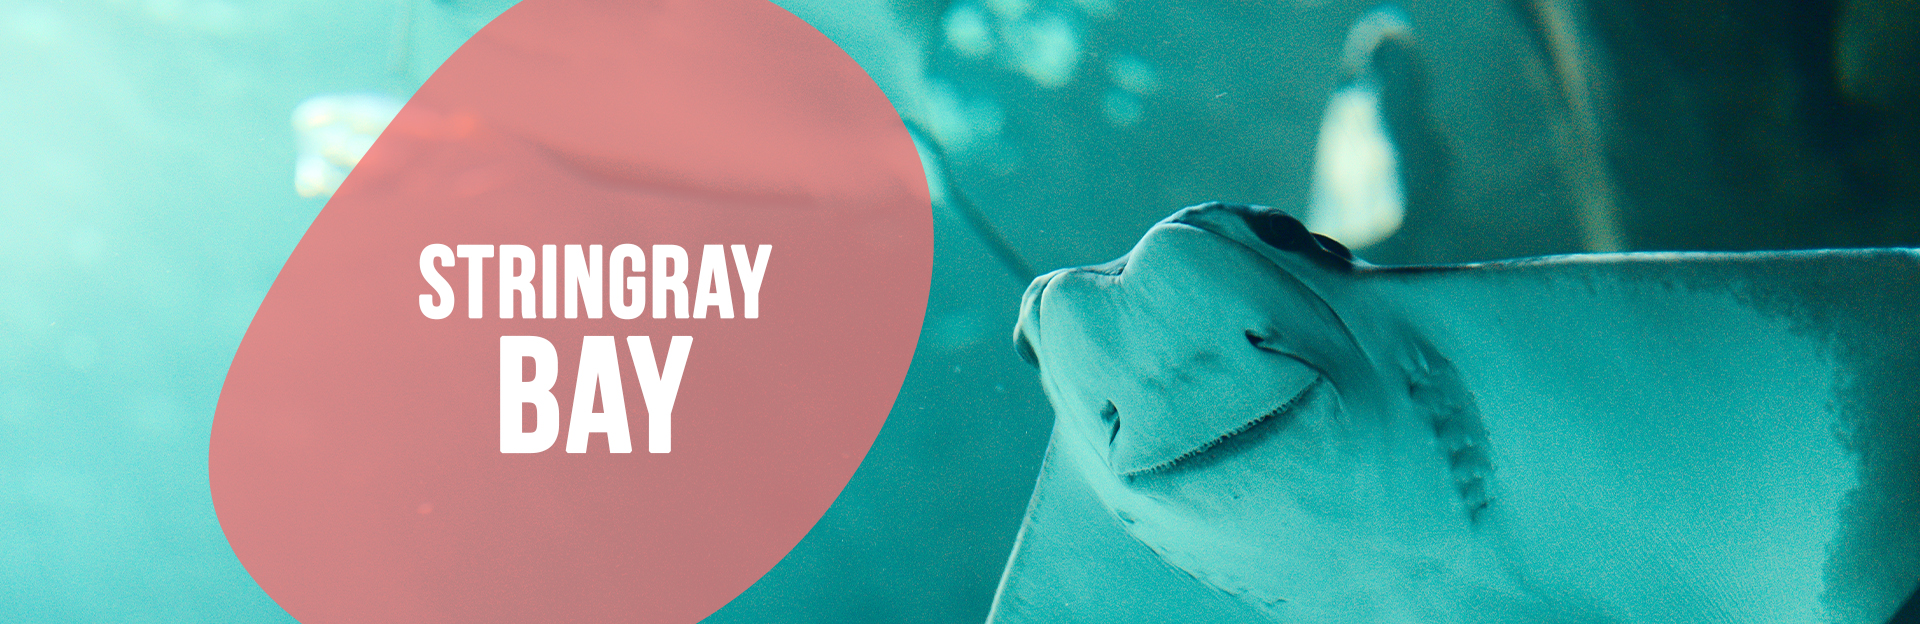 Header image for Stringray Bay page